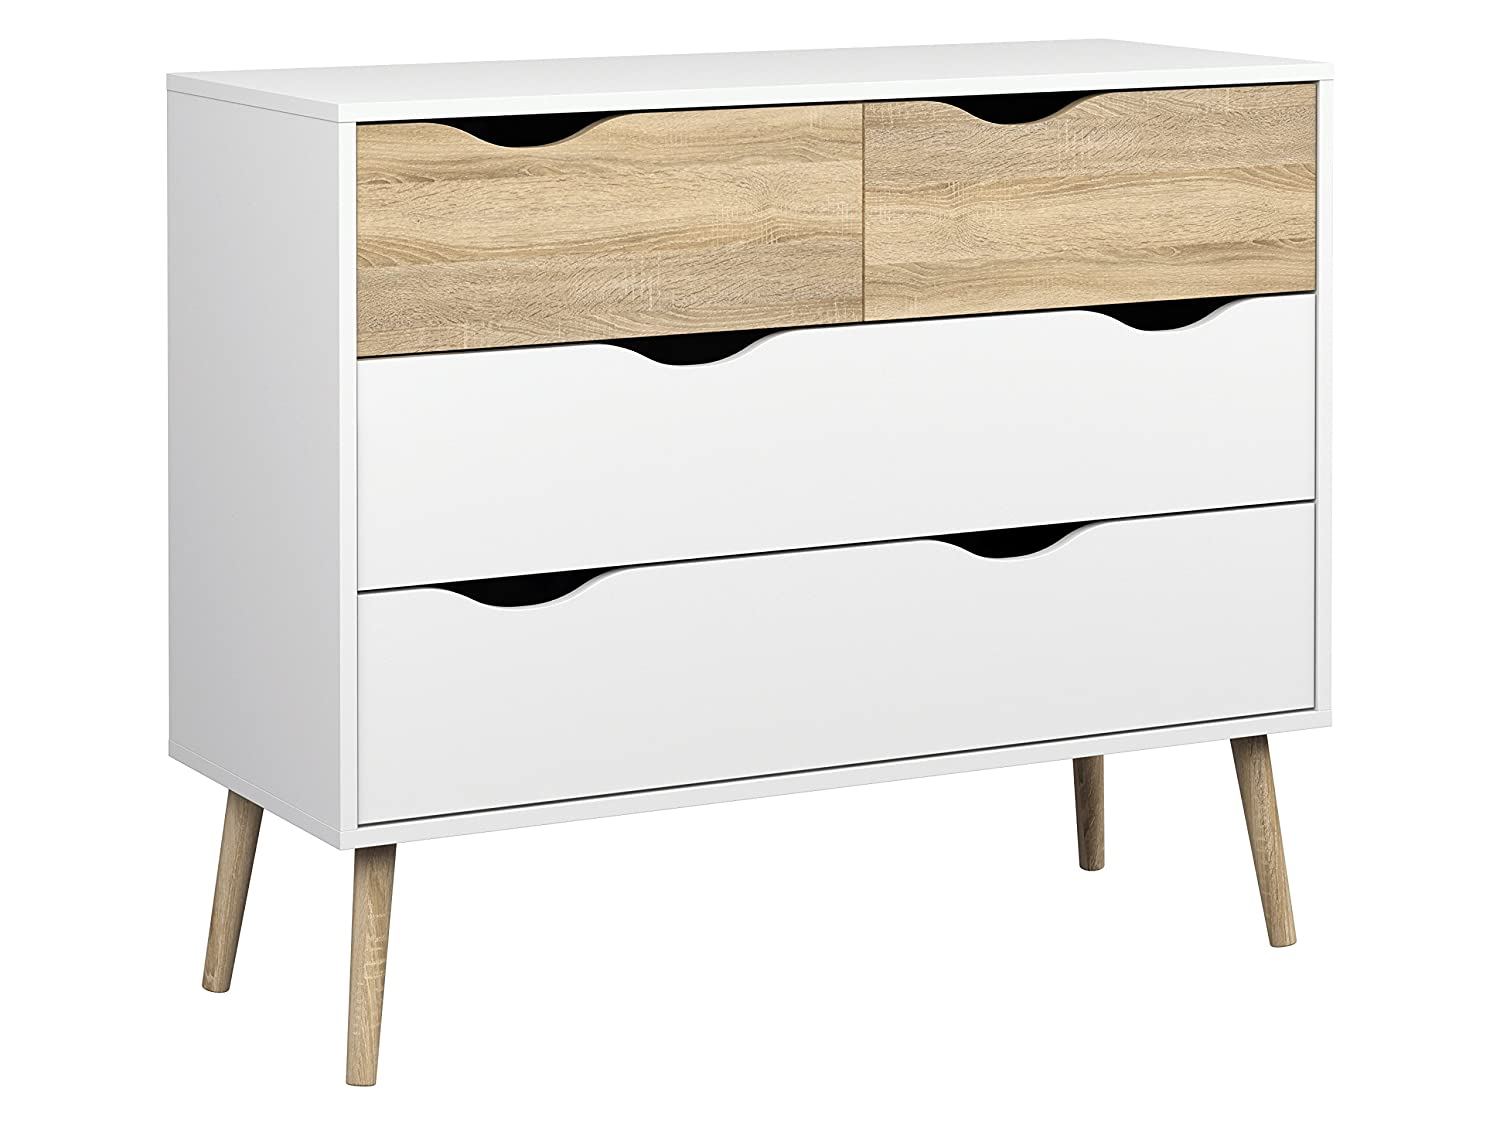 Tvilum 7539549ak Diana 4 Drawer Chest, White/Oak Structure